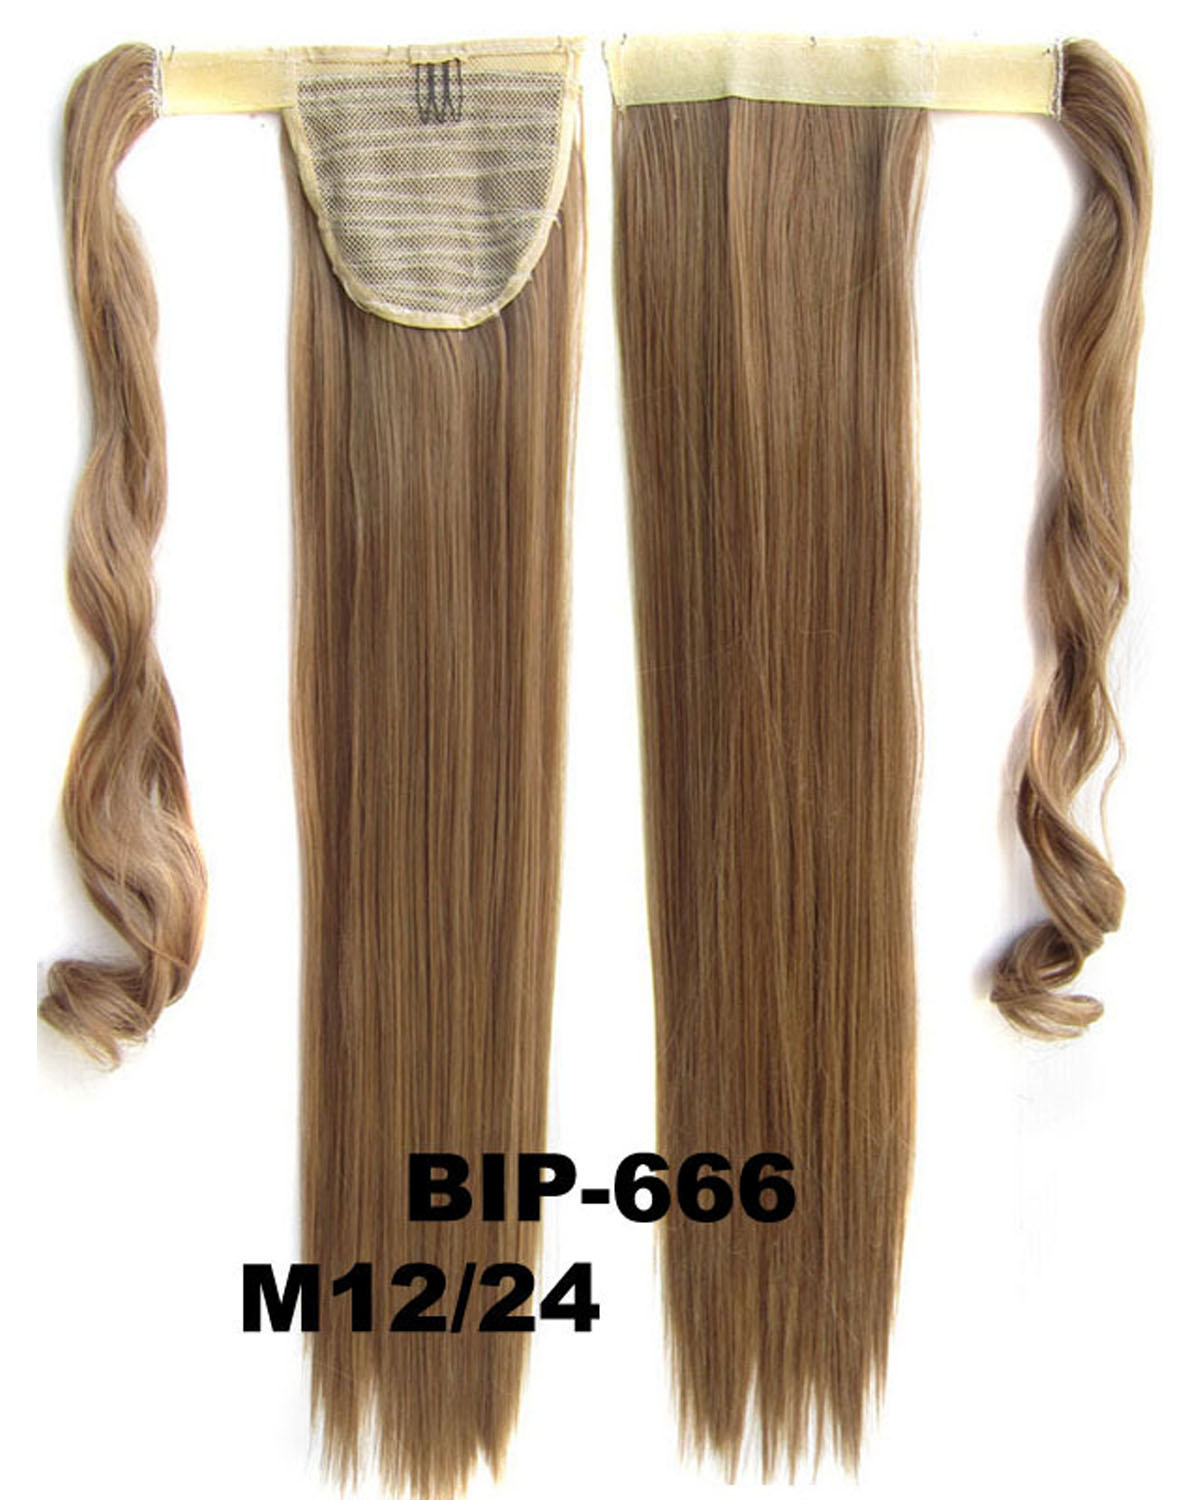 22 Inch Women Luxurious  Straight and Long Wrap Around Synthetic Hair Ponytail  M12/24